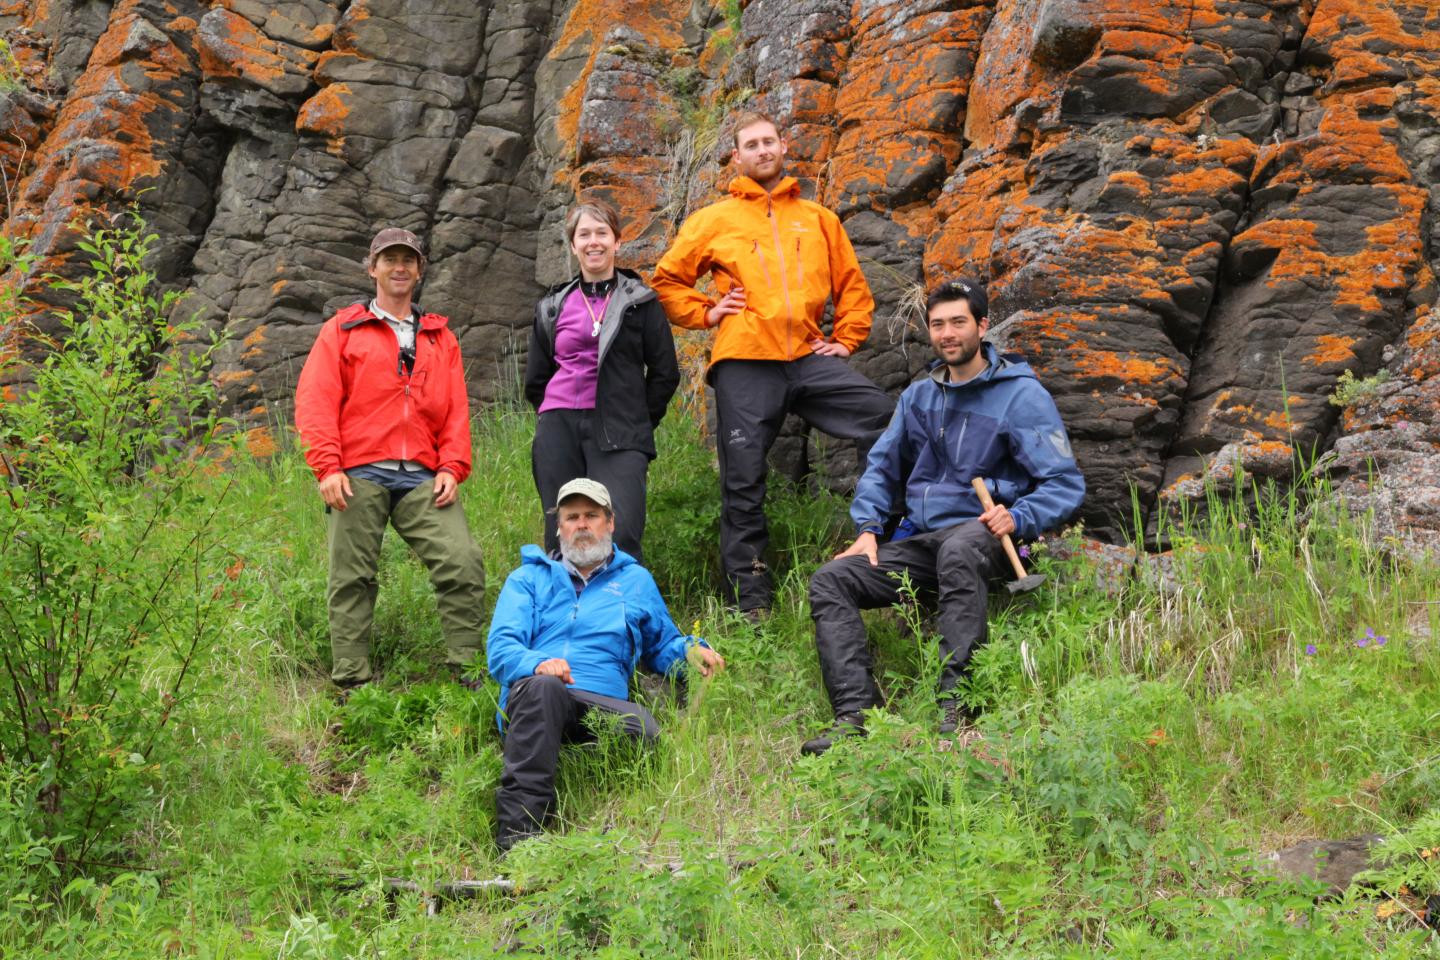 Linda Elkins-Tanton and her fieldwork team pose in front of columnar basalt from the Siberian flood basalts on an island in the Angara river.